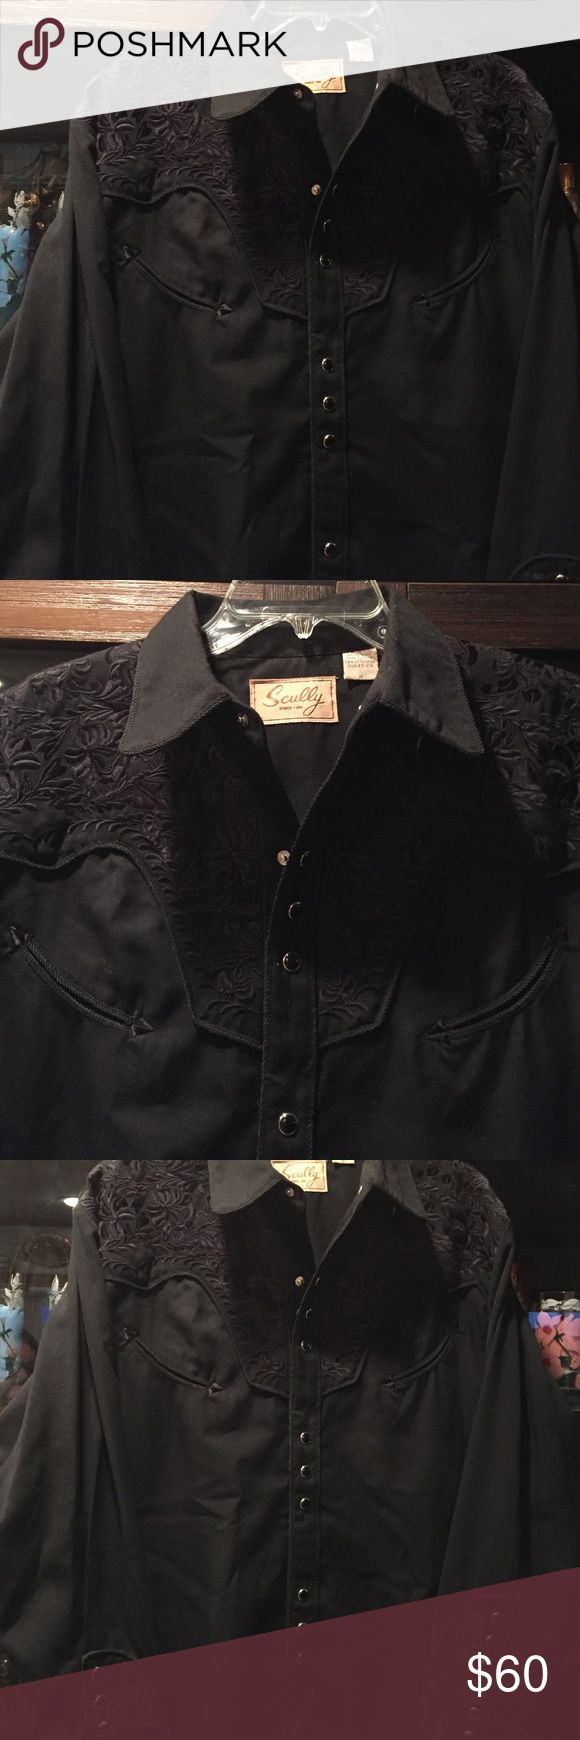 SCULLY men's shirt❤️ SCULLY medium black western shirt originally  $130 beautiful perfect condition details on front back & sleaves get his sexy back!💋bought at San Antonio store  in Texas. Black stone snap buttons scully Shirts Dress Shirts